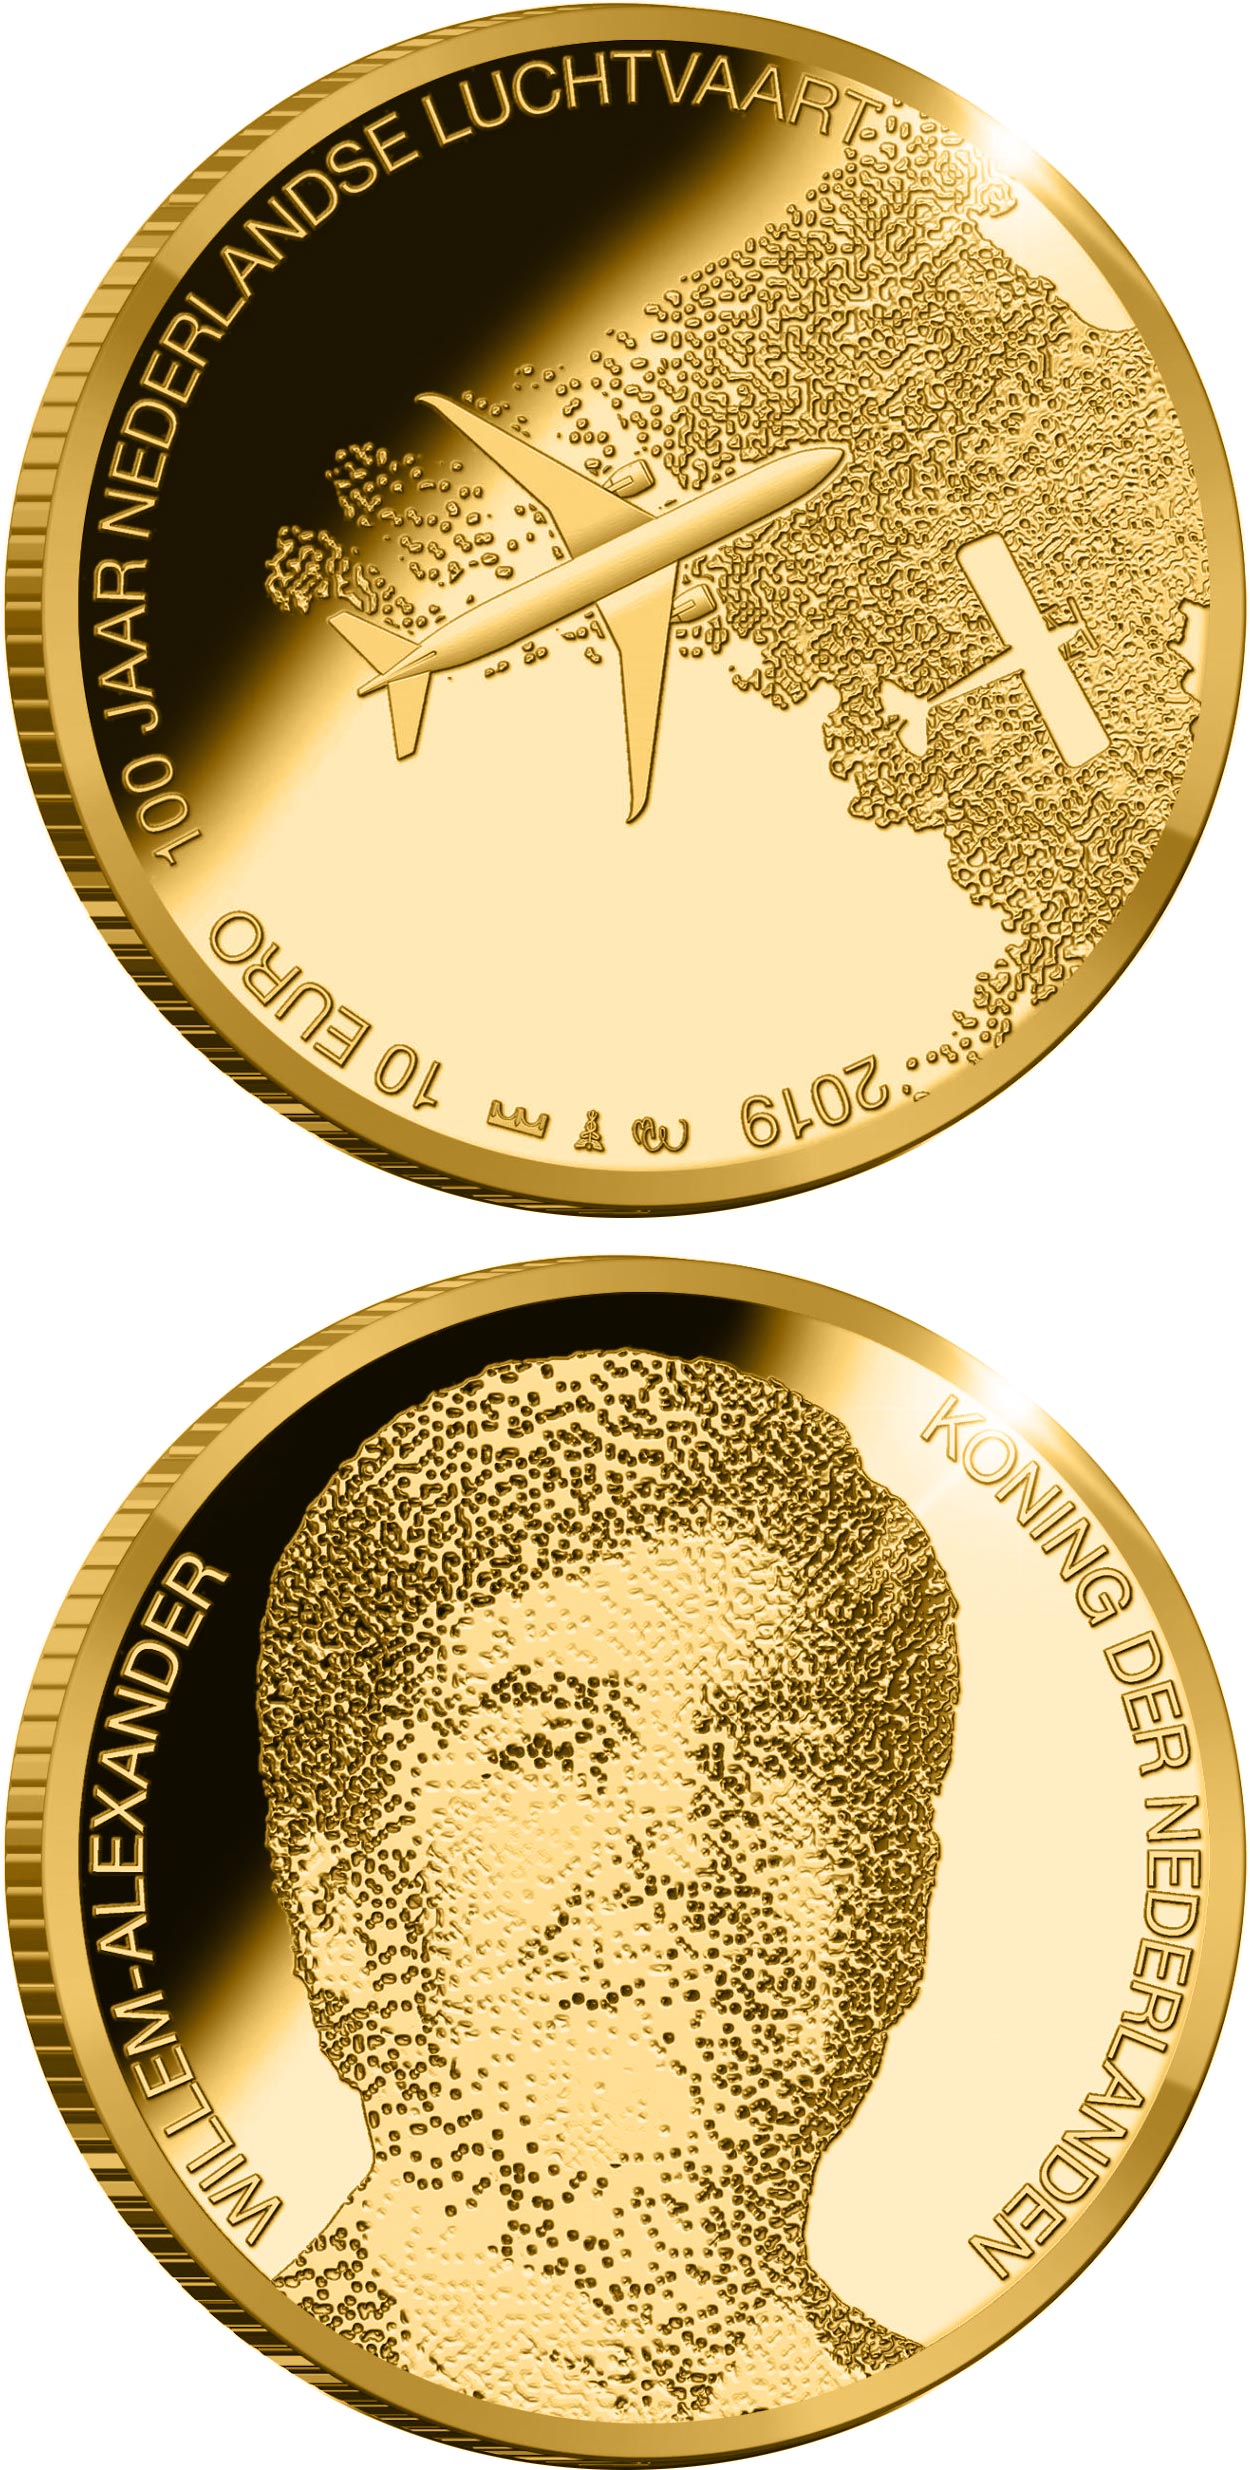 Image of 10 euro coin - 100 years of aviation in the Netherlands | Netherlands 2019.  The Gold coin is of Proof quality.